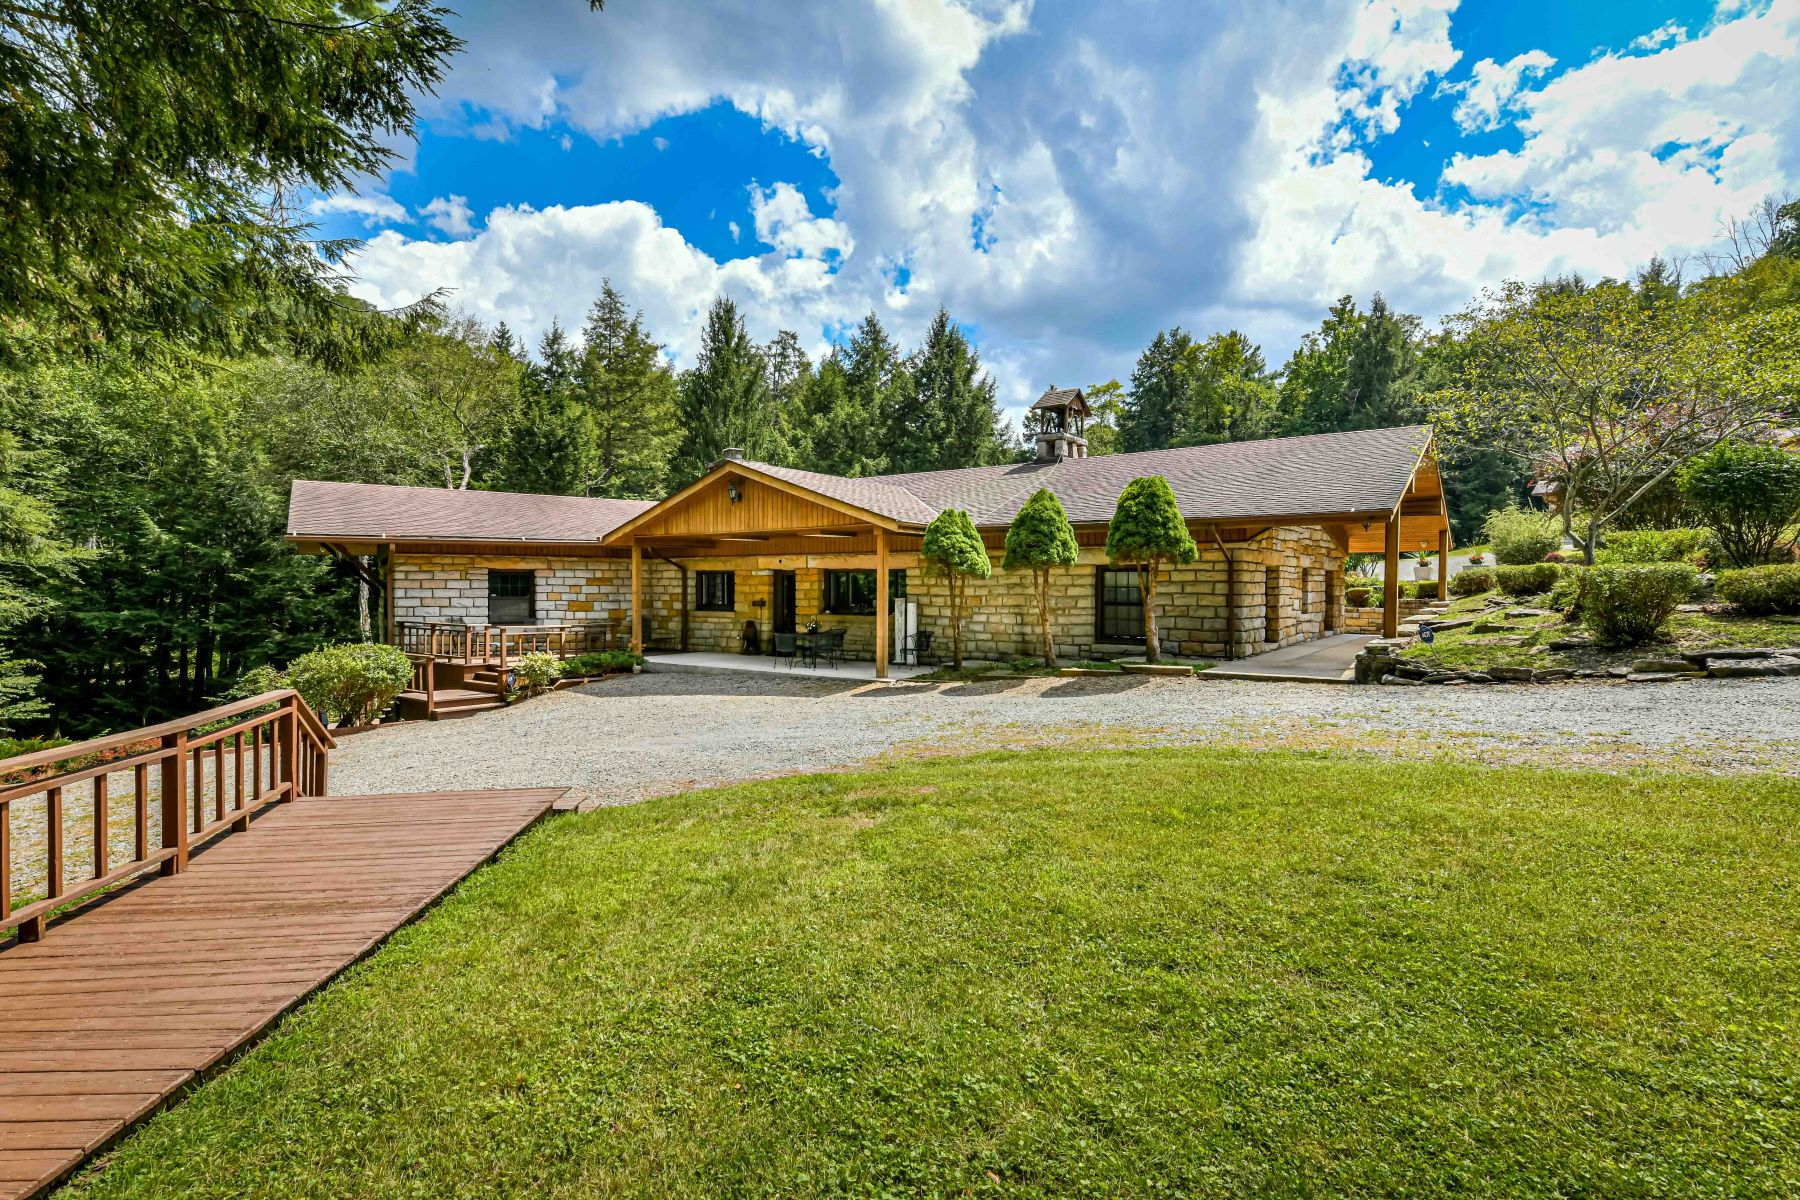 Single Family Homes for Sale at Tionesta Lodge on 223 Acres 1011 Taylor Road Tionesta, Pennsylvania 16353 United States